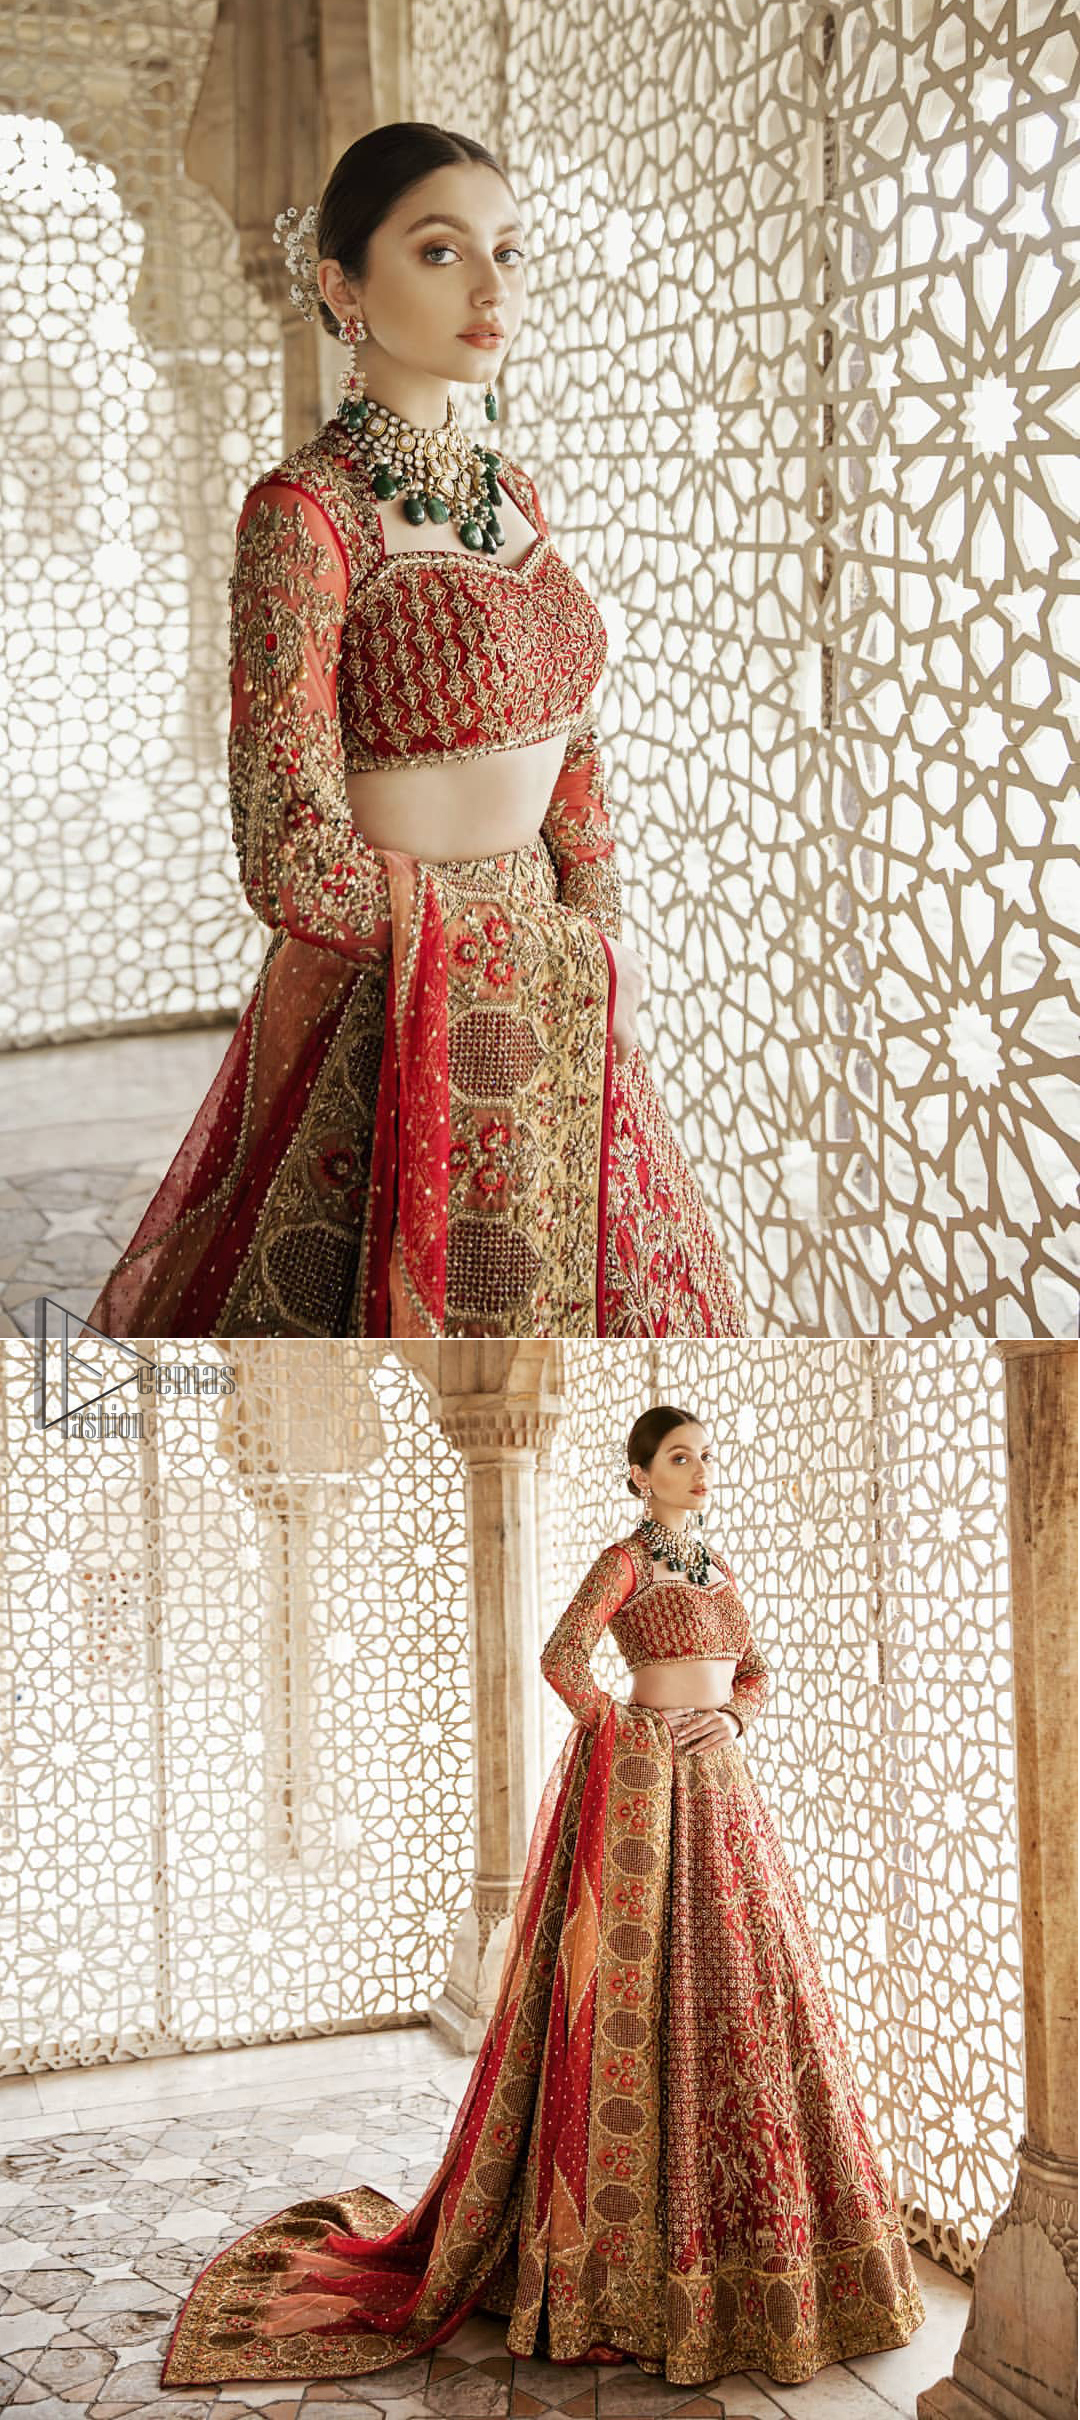 Classic, timeless and truly beautiful, our bridal dress is perfect for your unforgettable day. This exceptionally detailed dress is cut in a seductive fit and flare silhouette that's sure to turn heads. The blouse is adorned with antique shaded kora, dabka, tilla, kundan, sequins and pearls. Coordinated with traditional red lehenga having geometric patterns and floral embroidery ornamented with antique shaded zardozi work. The hemline is also adorned with vibrant floral motifs. Elegance is personified when it gets paired up with red organza dupatta having four sided thick embellished border.